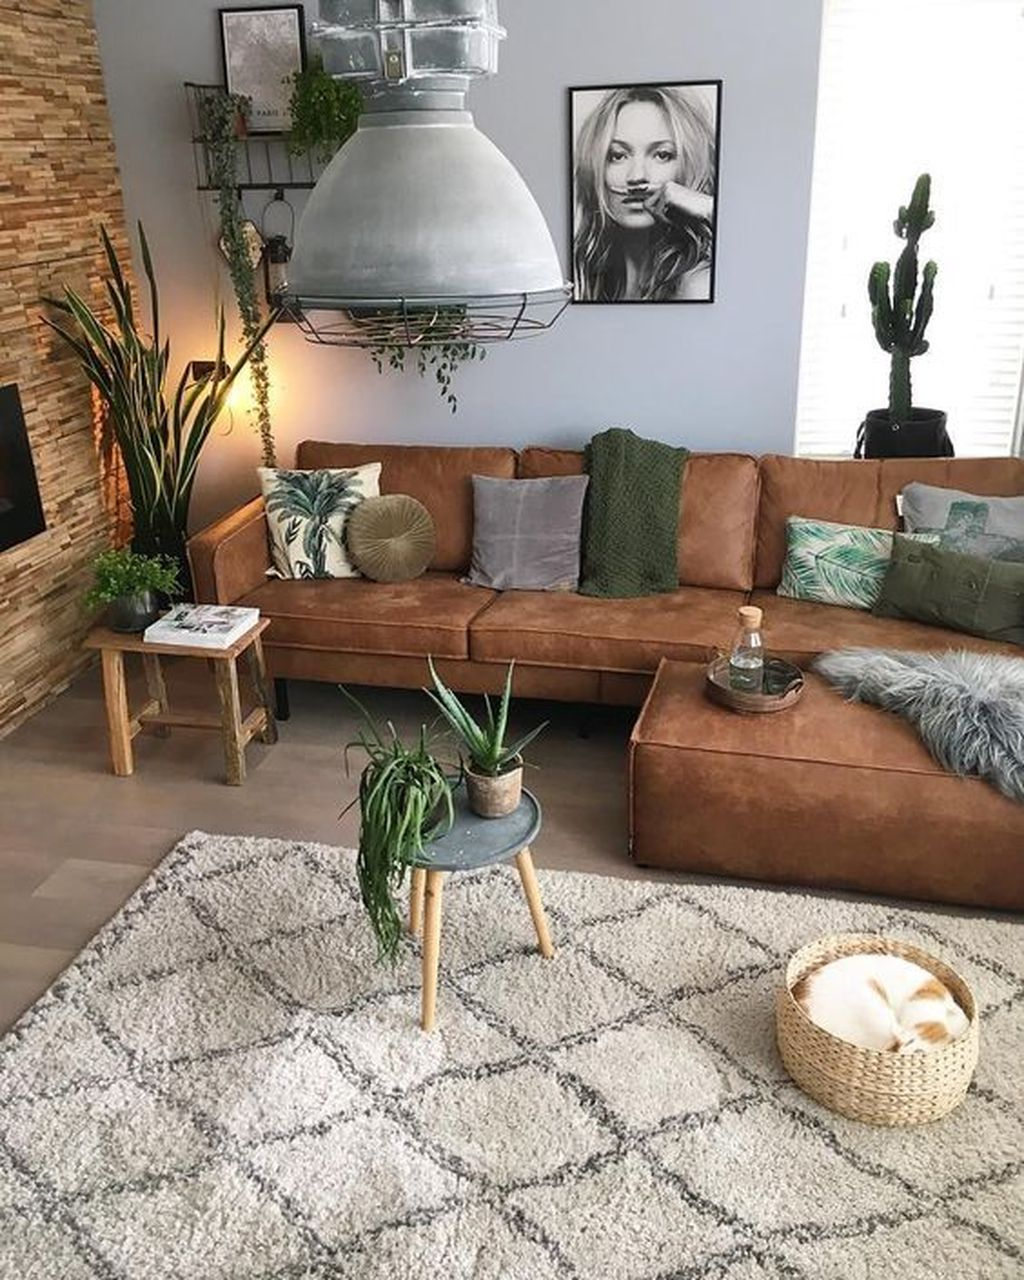 Luxury Living Room Design Ideas With Gray Wall Color 26